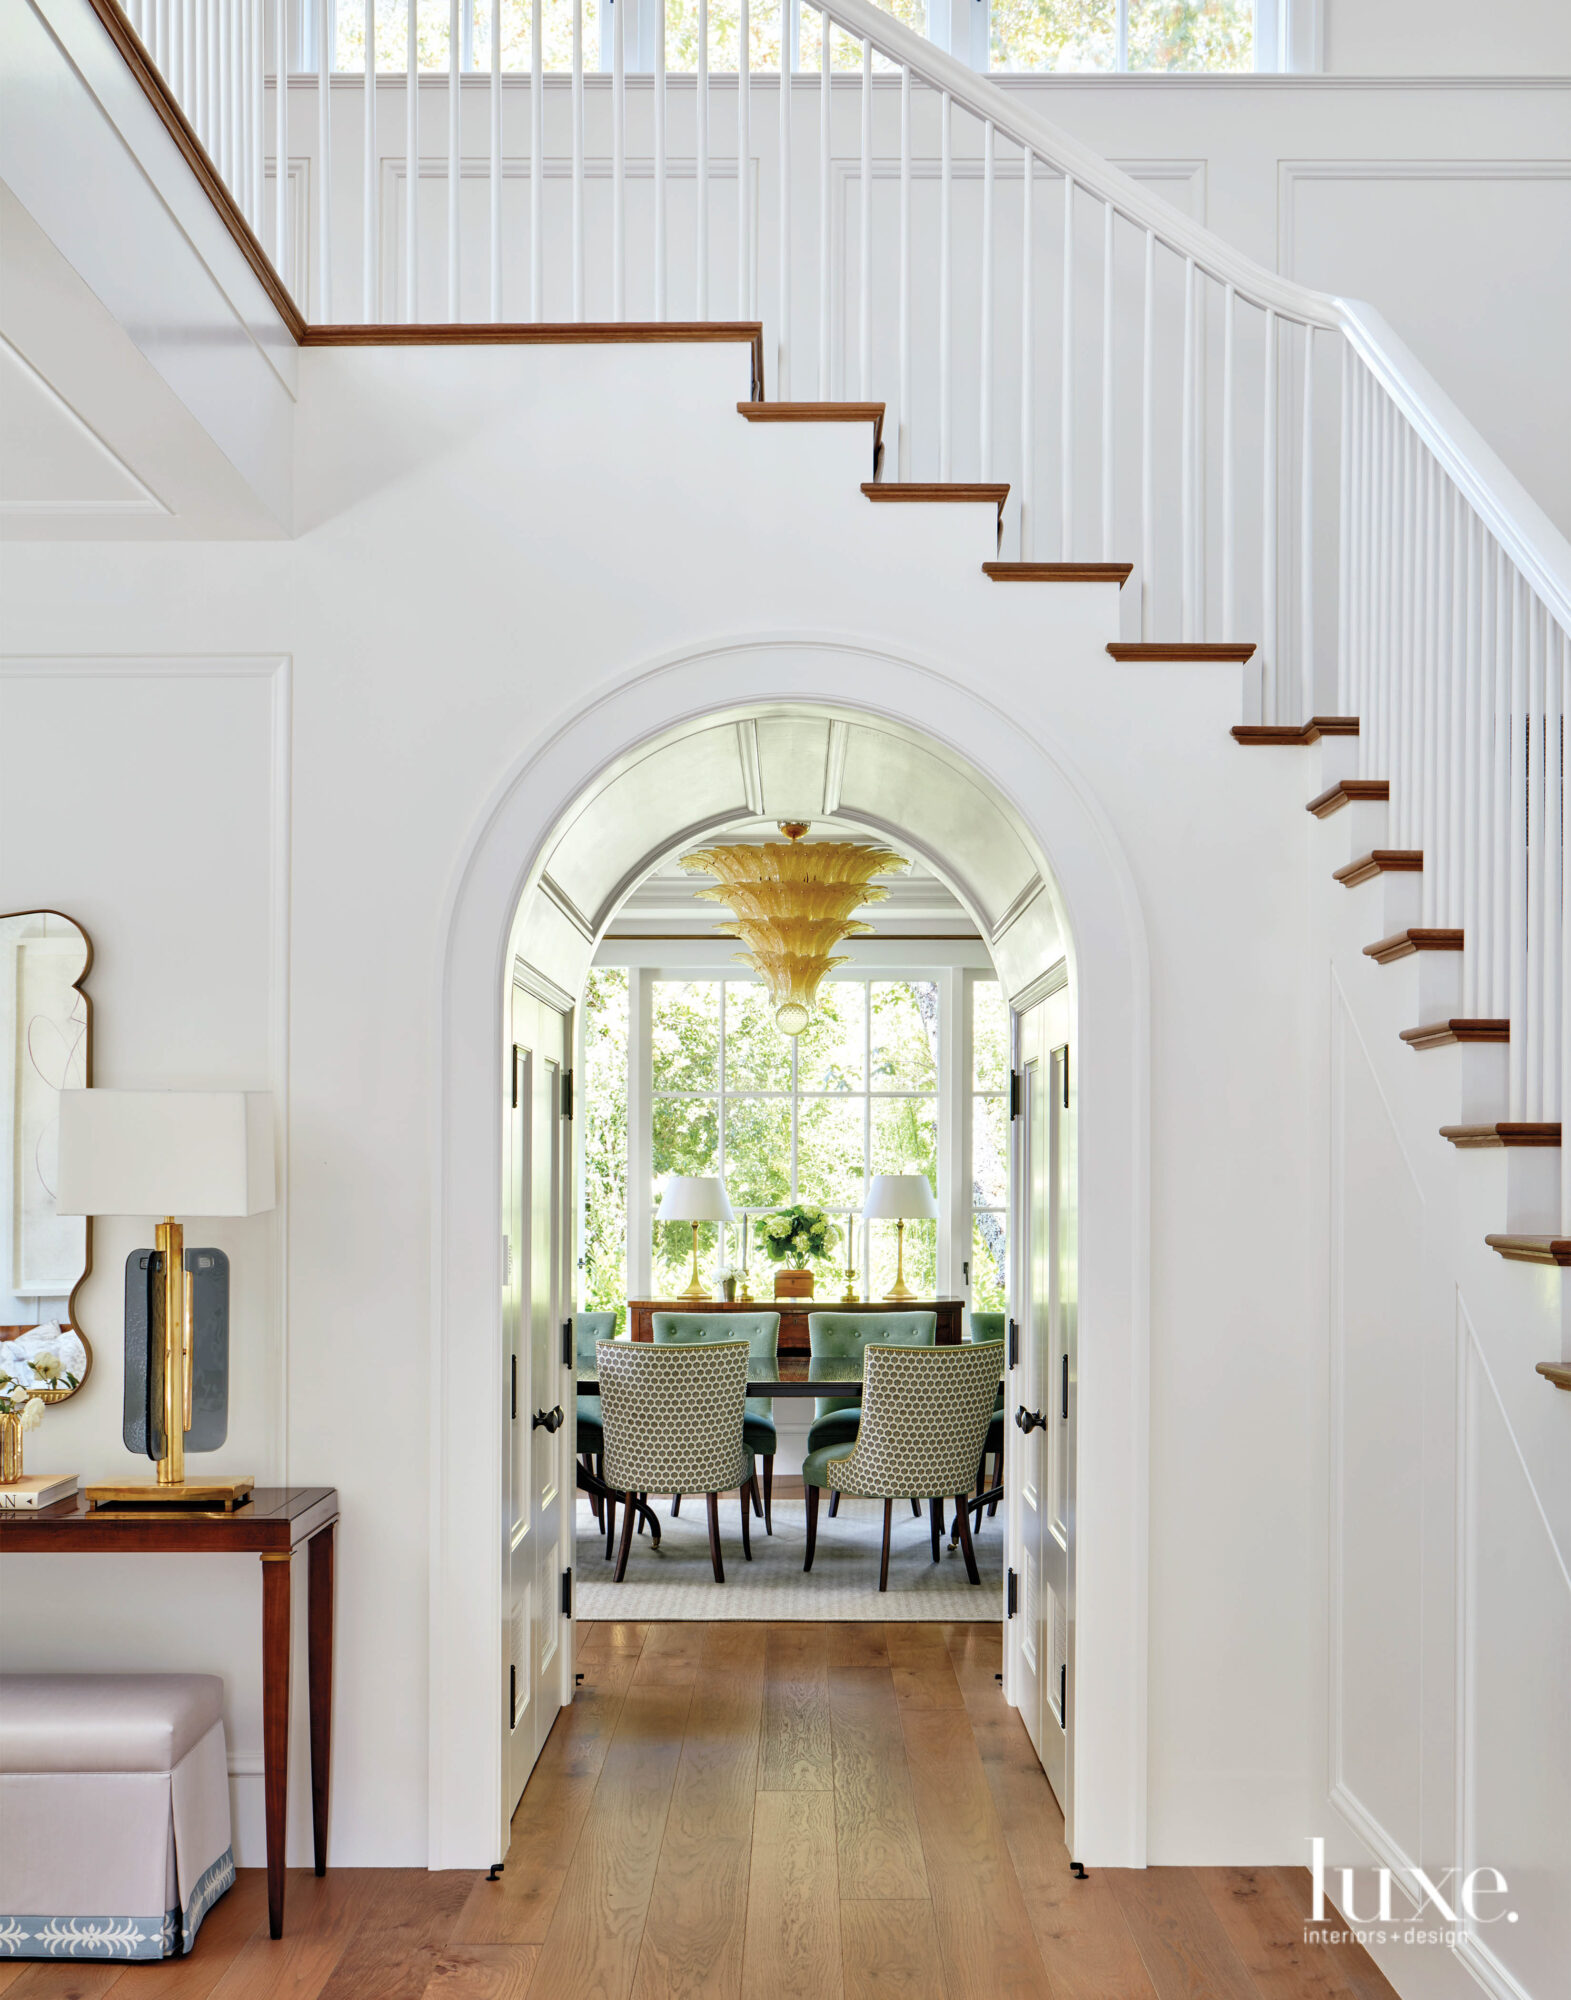 The entry features an arched passageway.